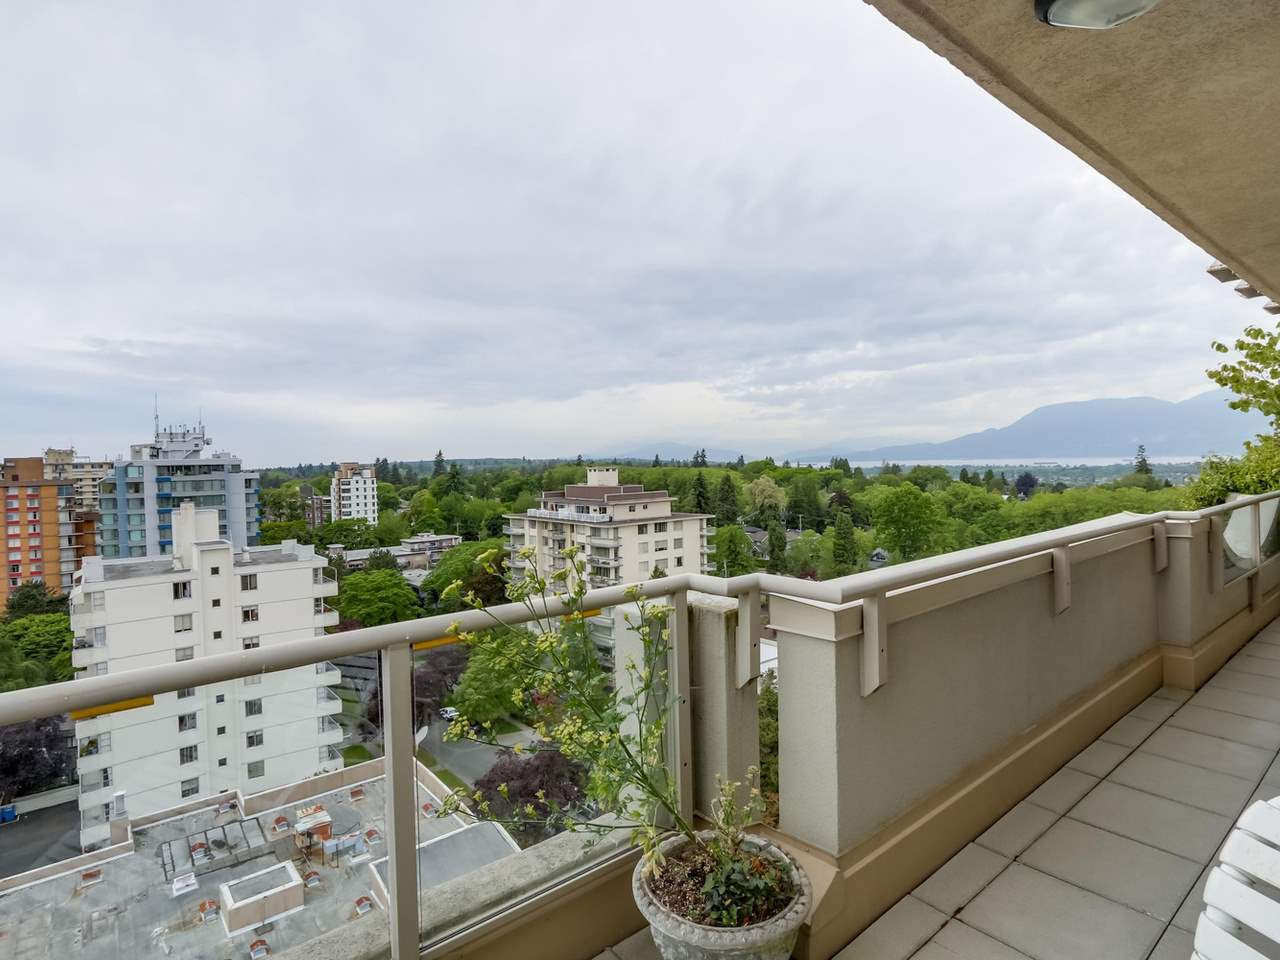 """Photo 16: Photos: PH1 2108 W 38TH Avenue in Vancouver: Kerrisdale Condo for sale in """"THE WILSHIRE"""" (Vancouver West)  : MLS®# R2072443"""